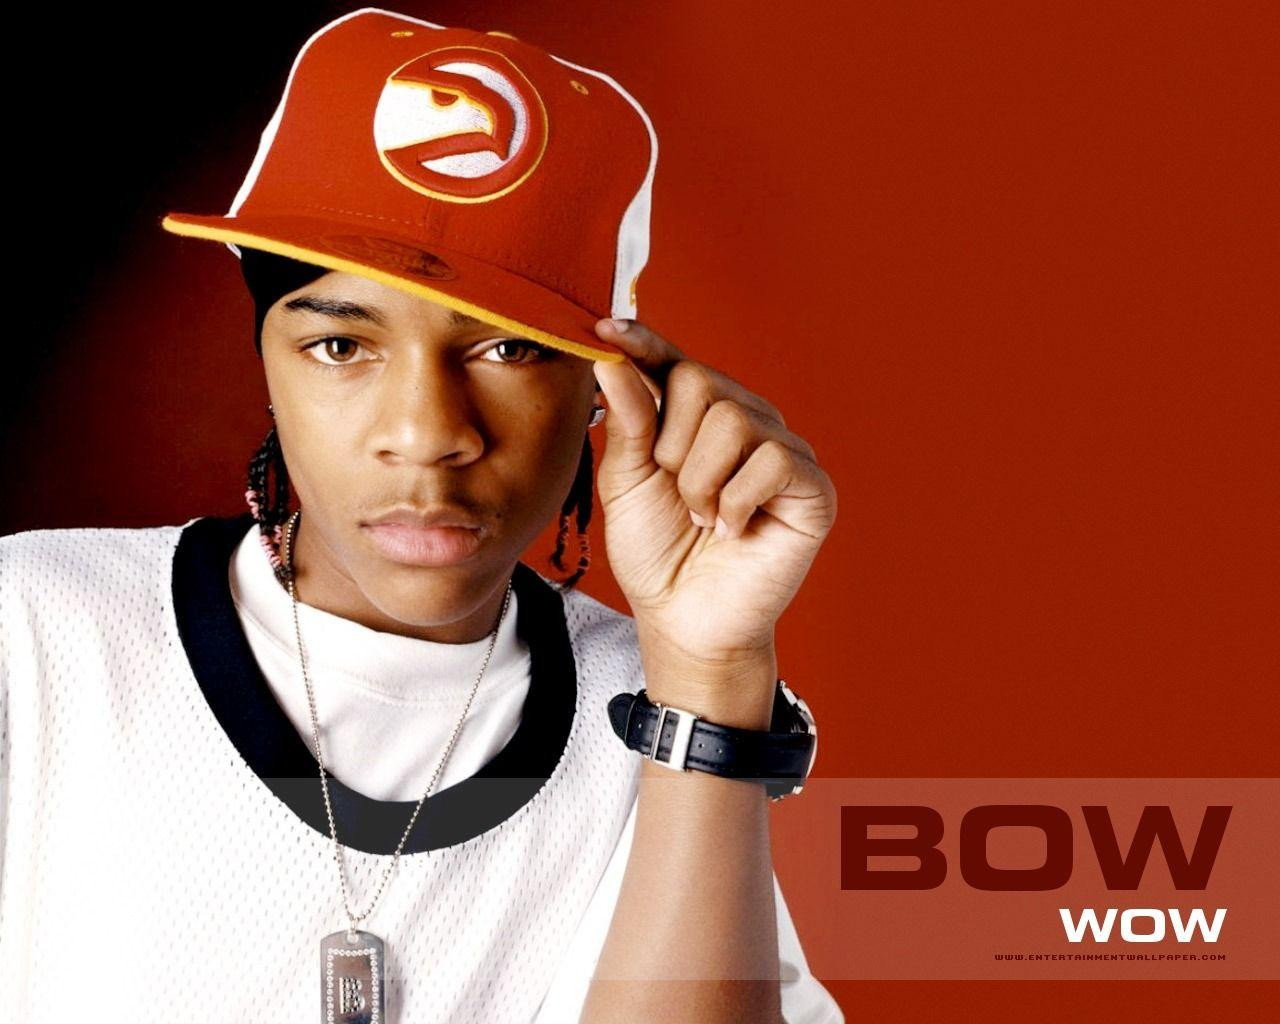 Download fuck bow wow